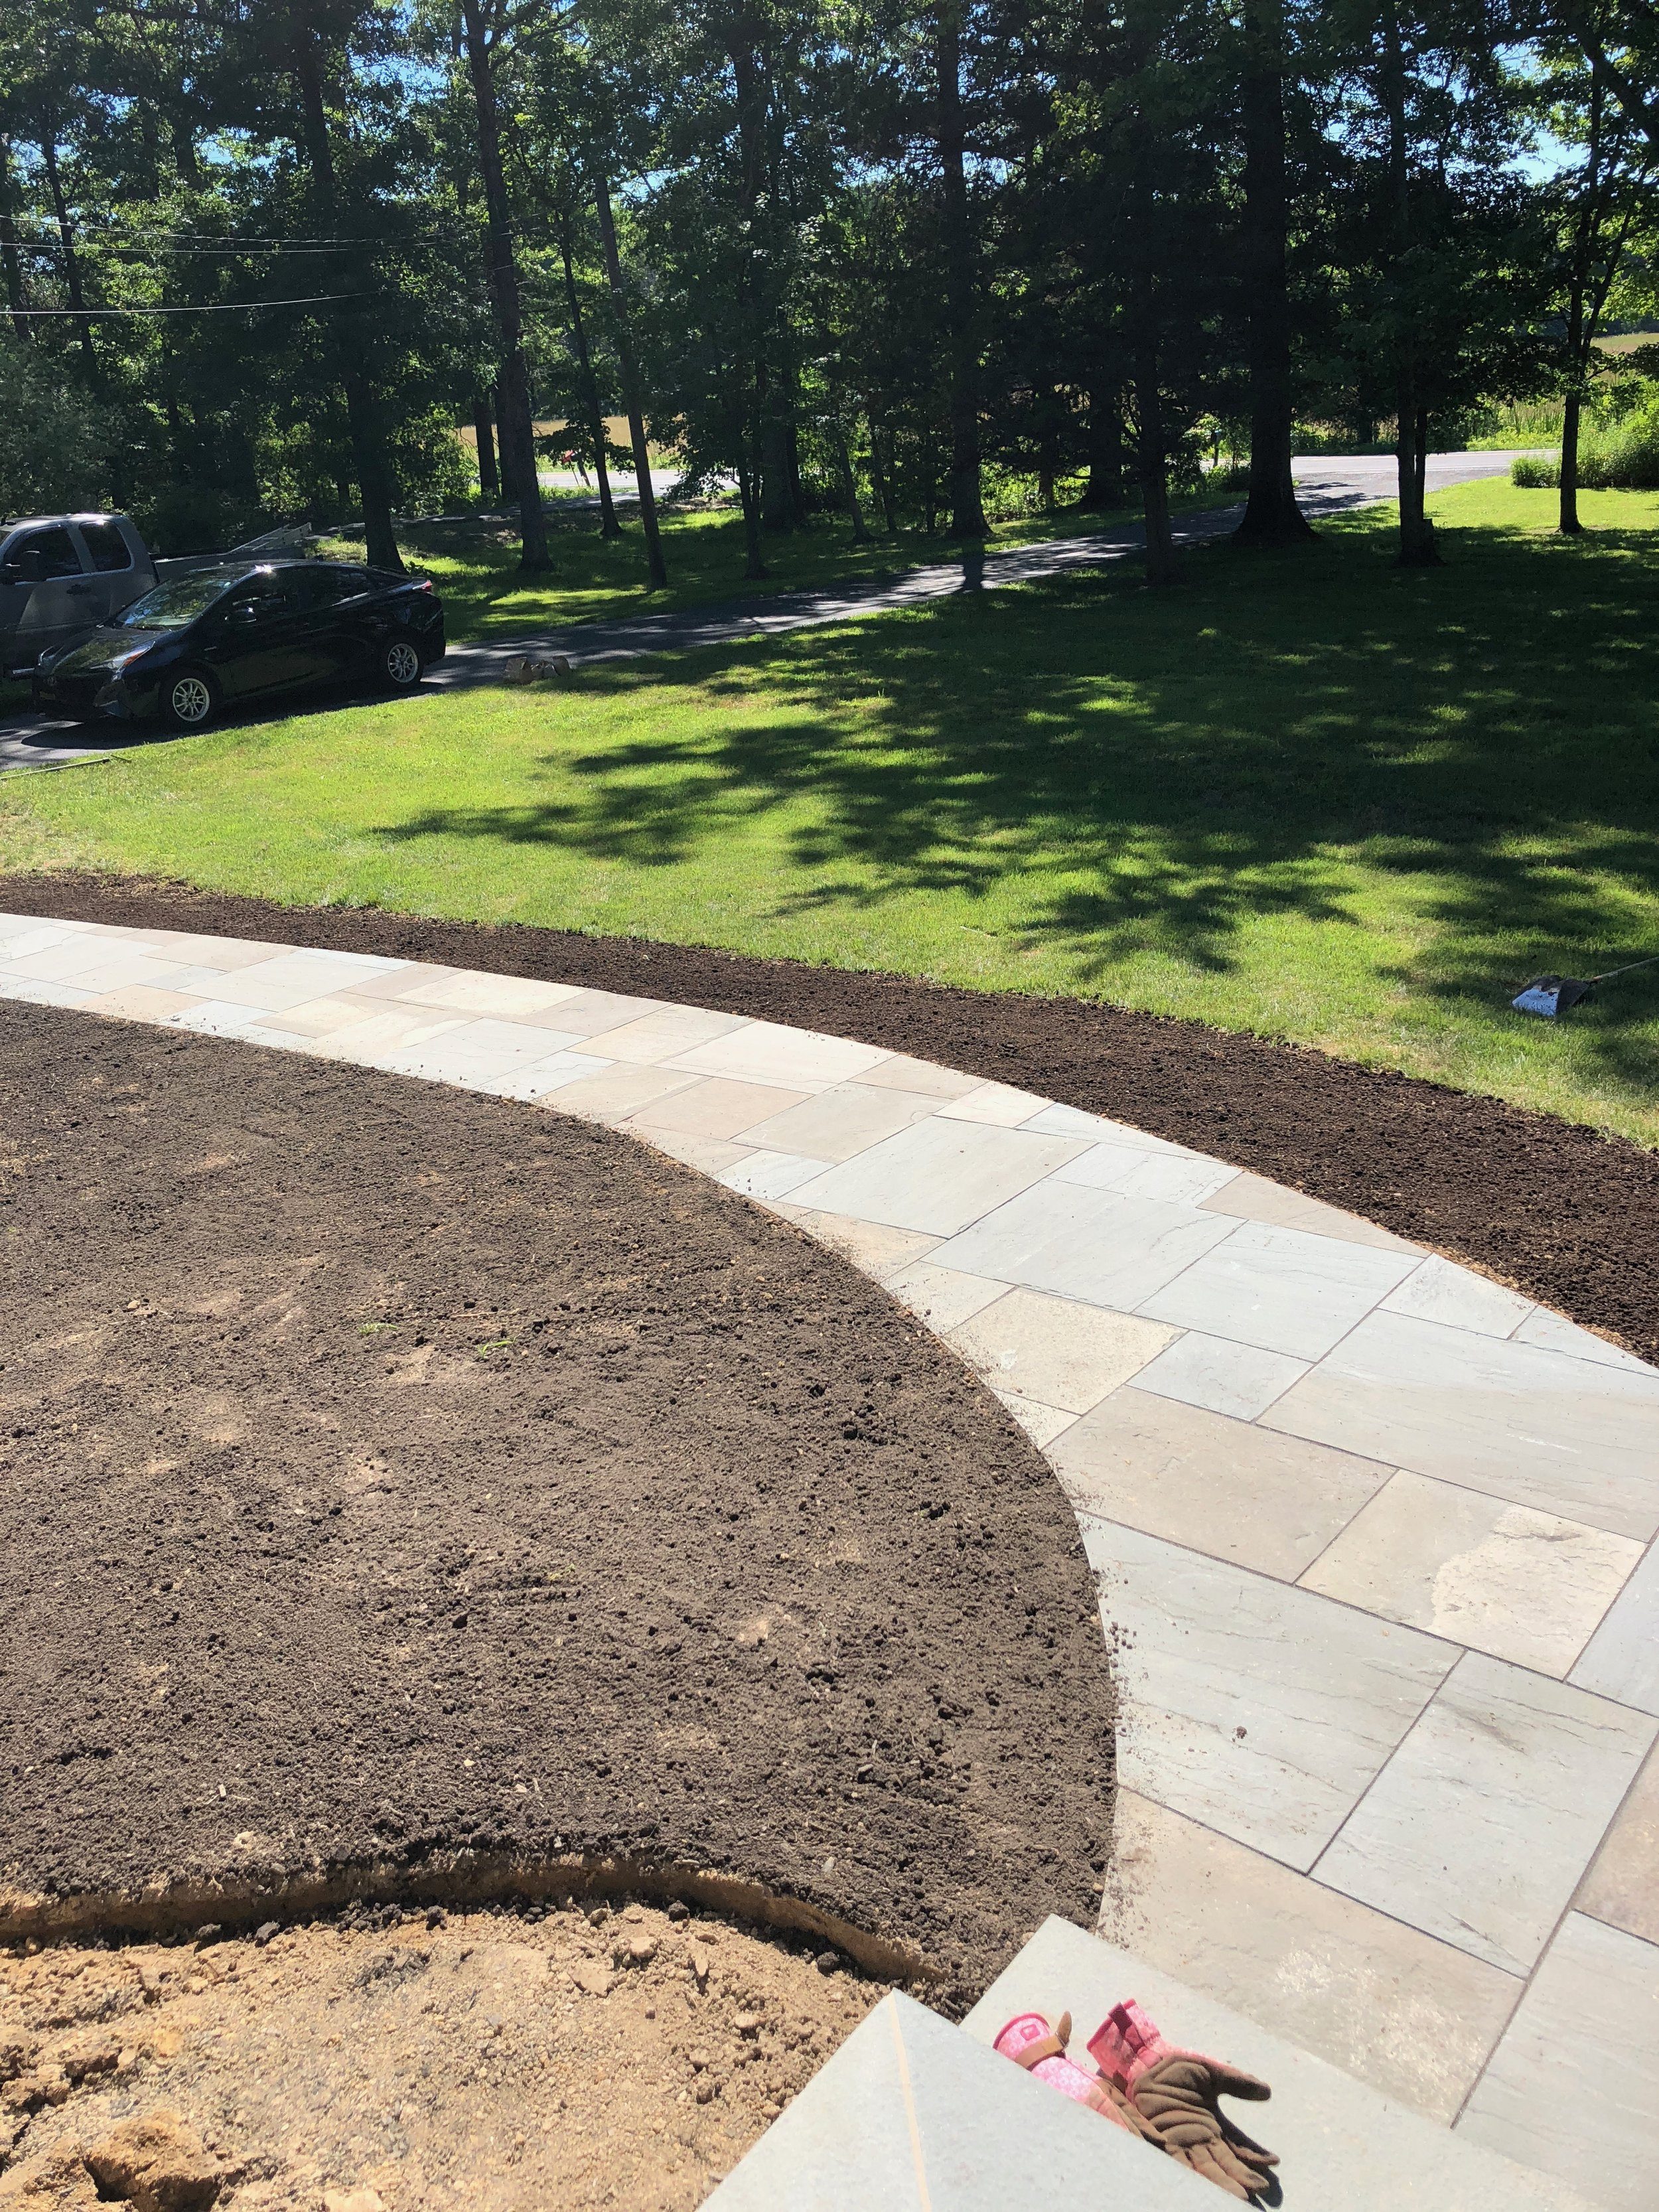 After the walkway was complete, the final step was grading the lawn. We added topsoil and planted grass seed so the walkway would blend seamlessly into the existing lawn.